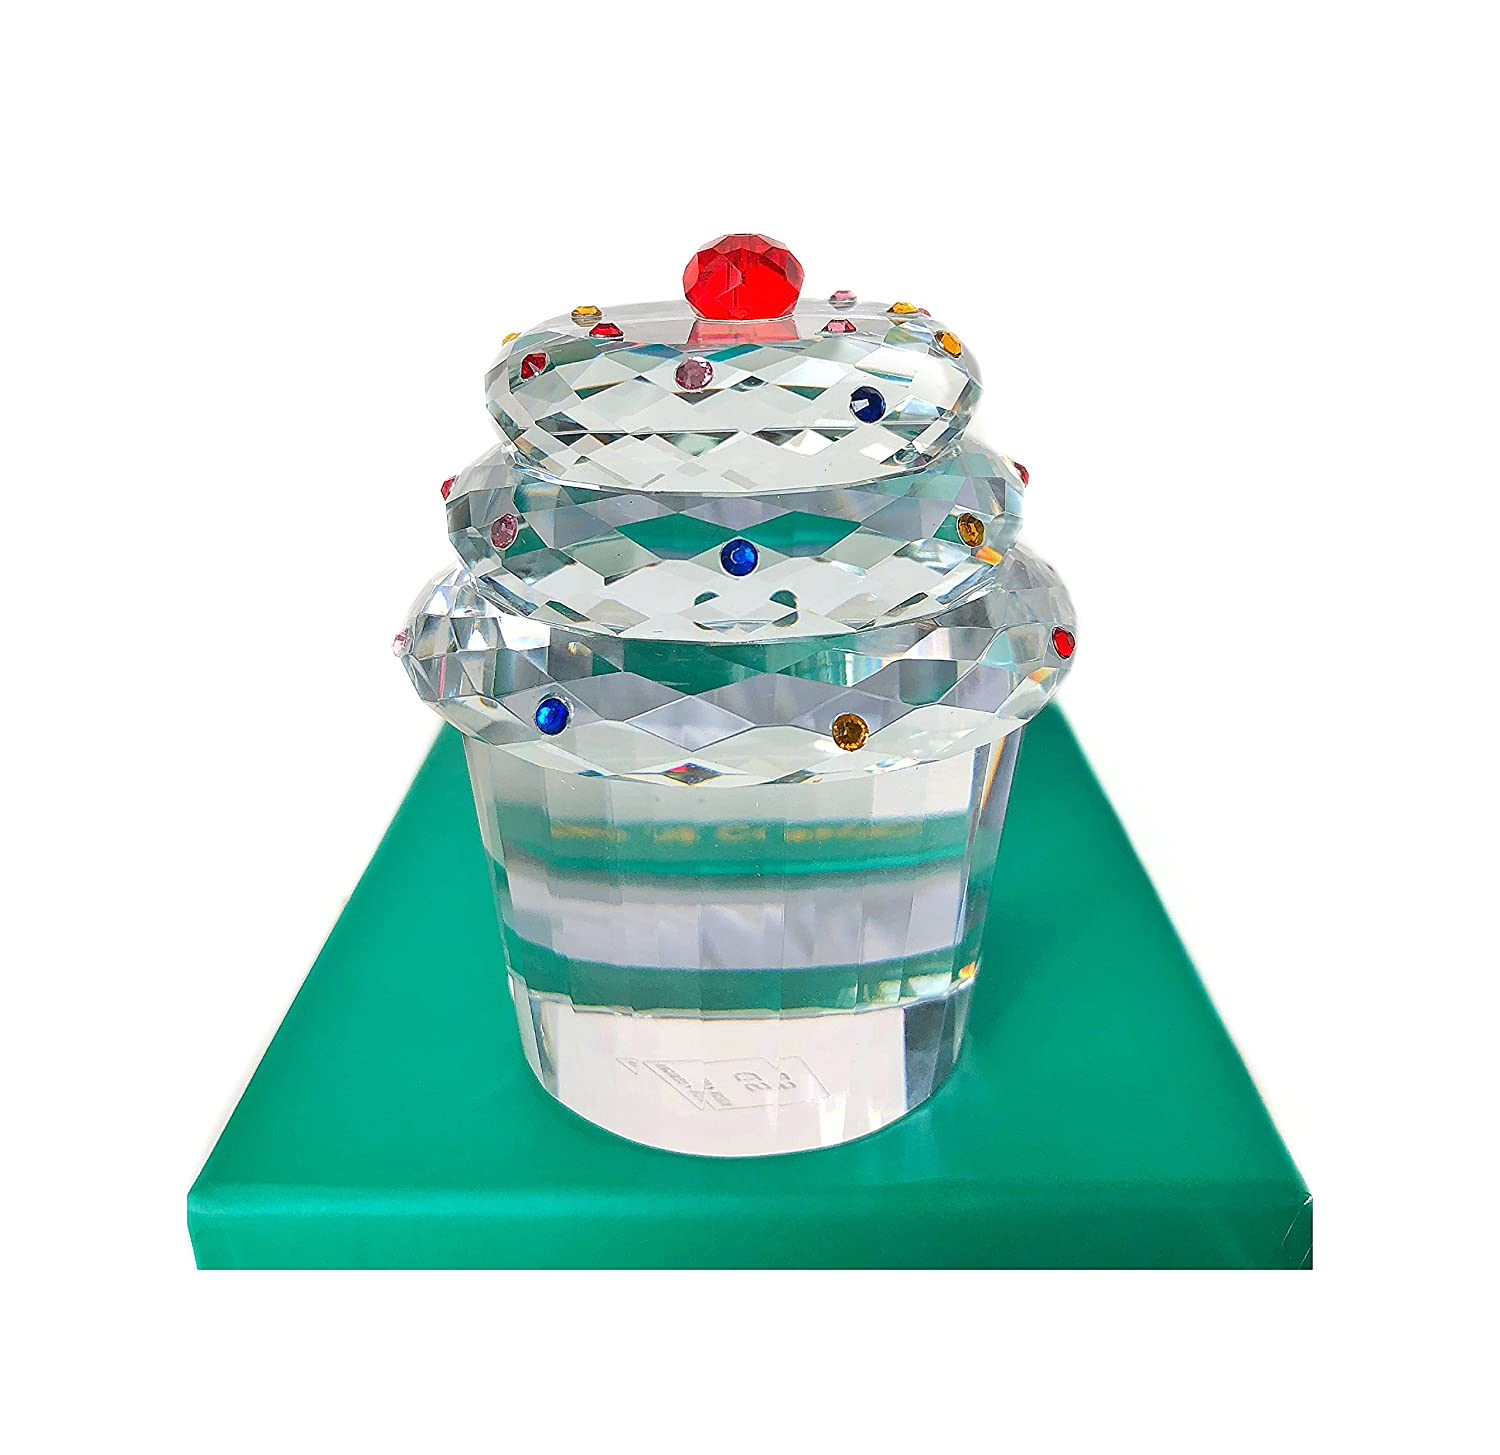 210d24a22ea71 Simon Design Crystal Cup Cake Cherry Paperweight: Amazon.co.uk ...